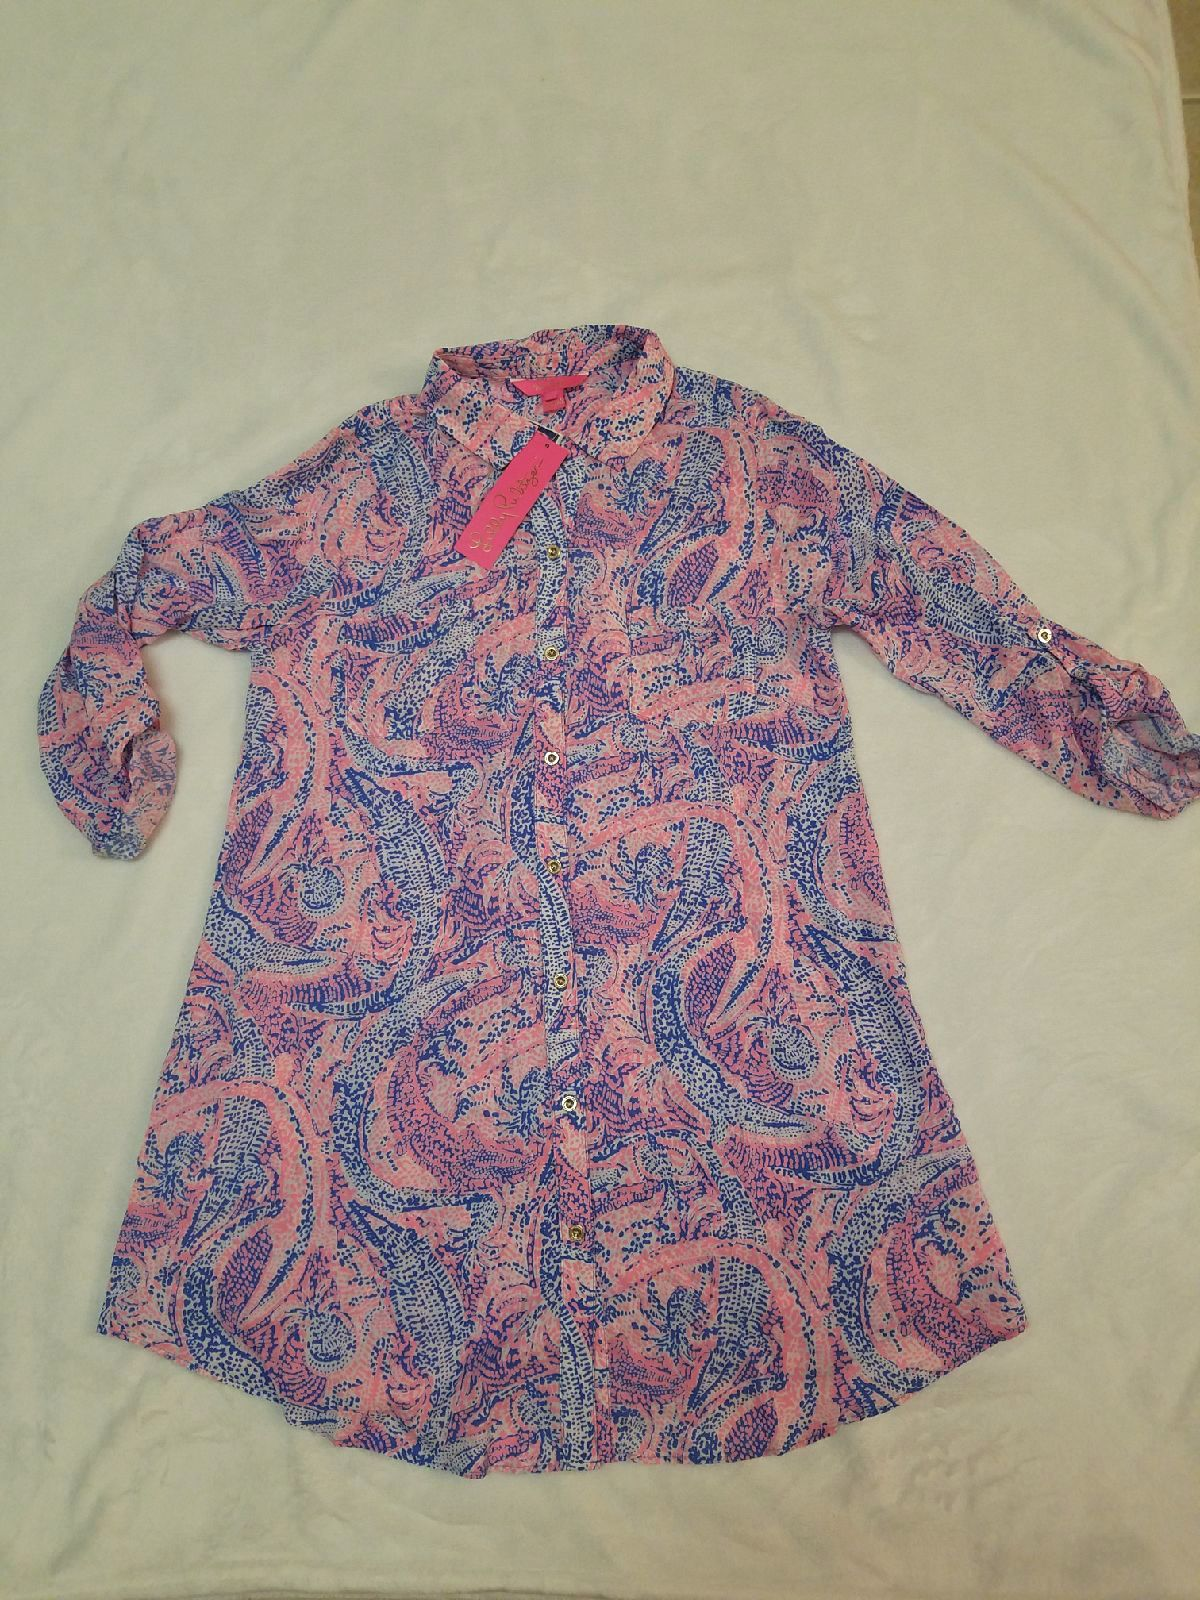 Lilly Pulitzer Natalie Cover Up (SMALL)